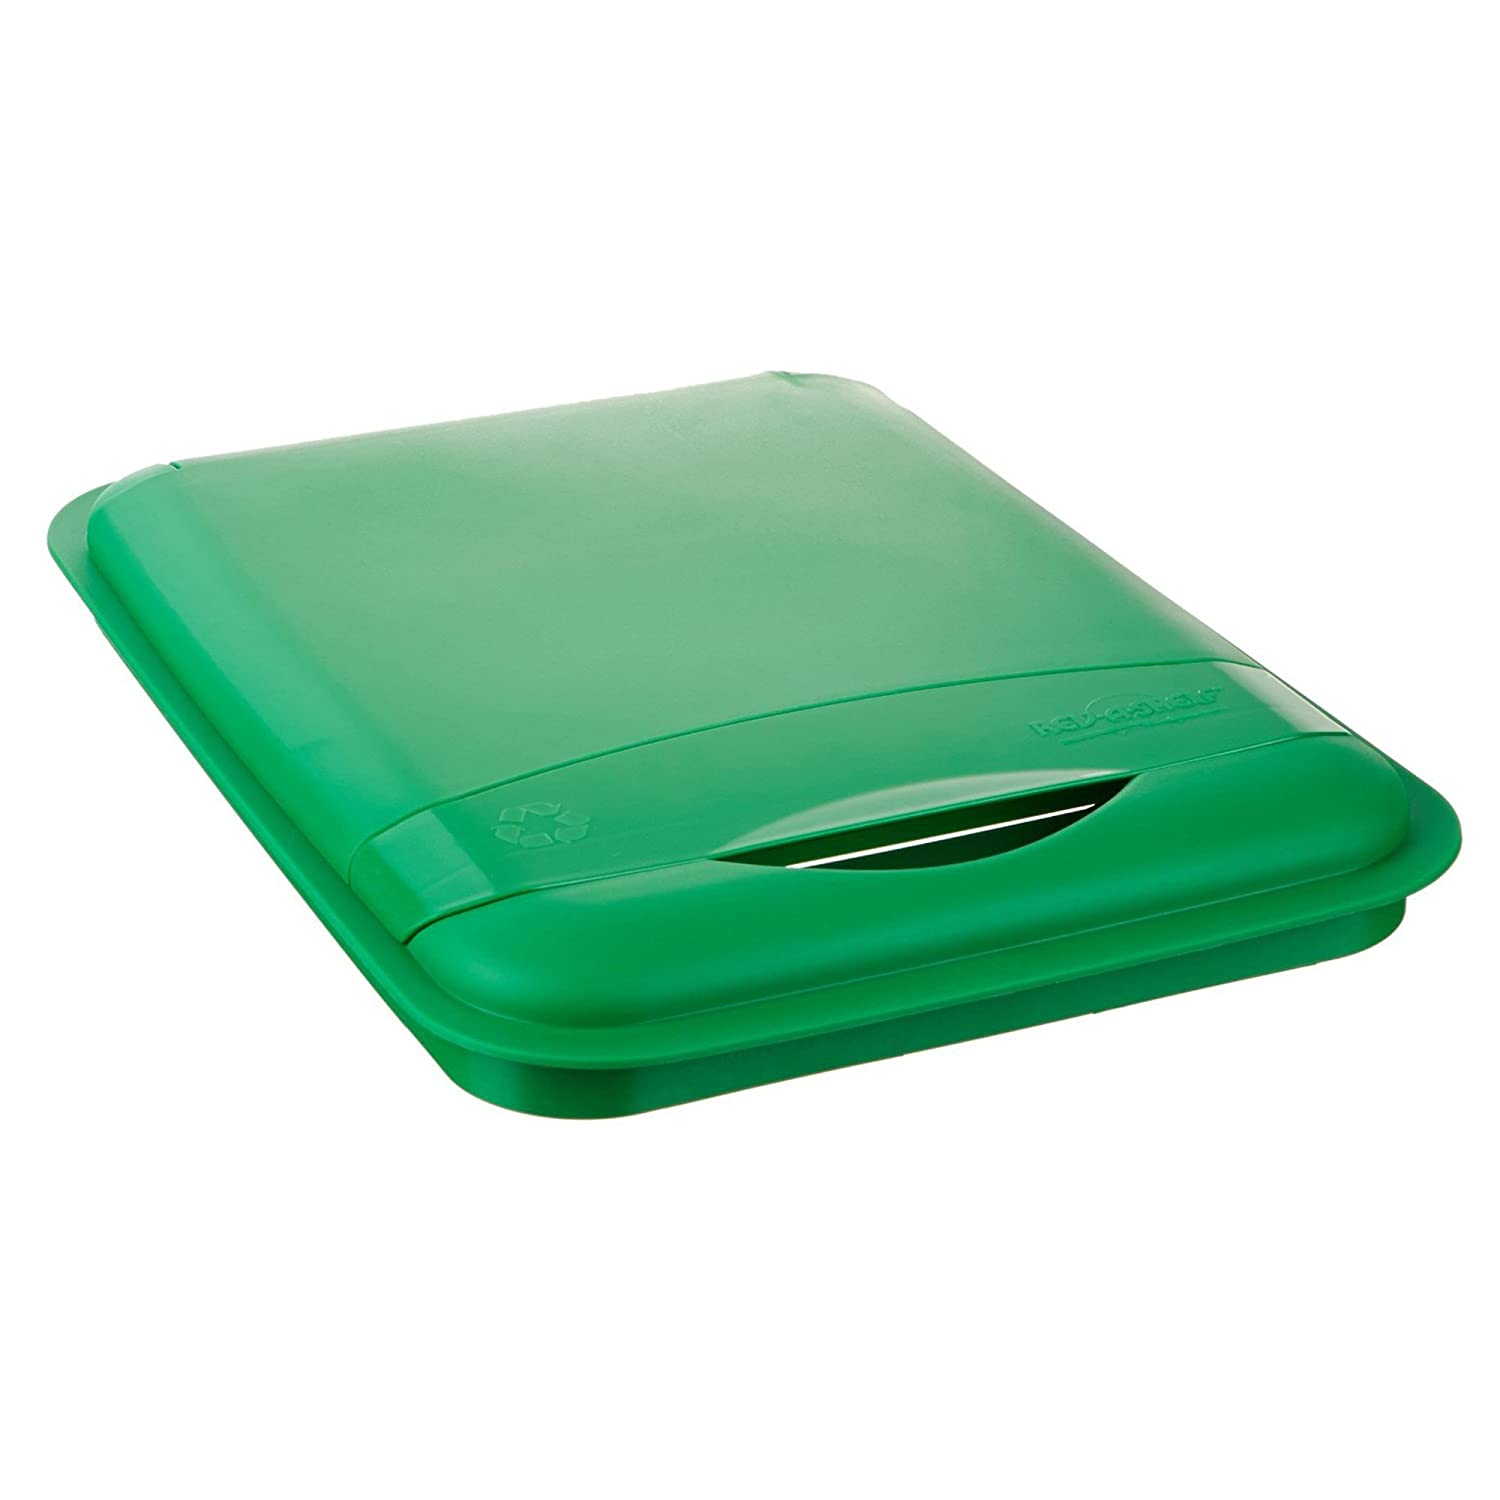 Rev-A-Shelf RV-50-Lid-G-1 50 Quart Recycling Lid (Green)